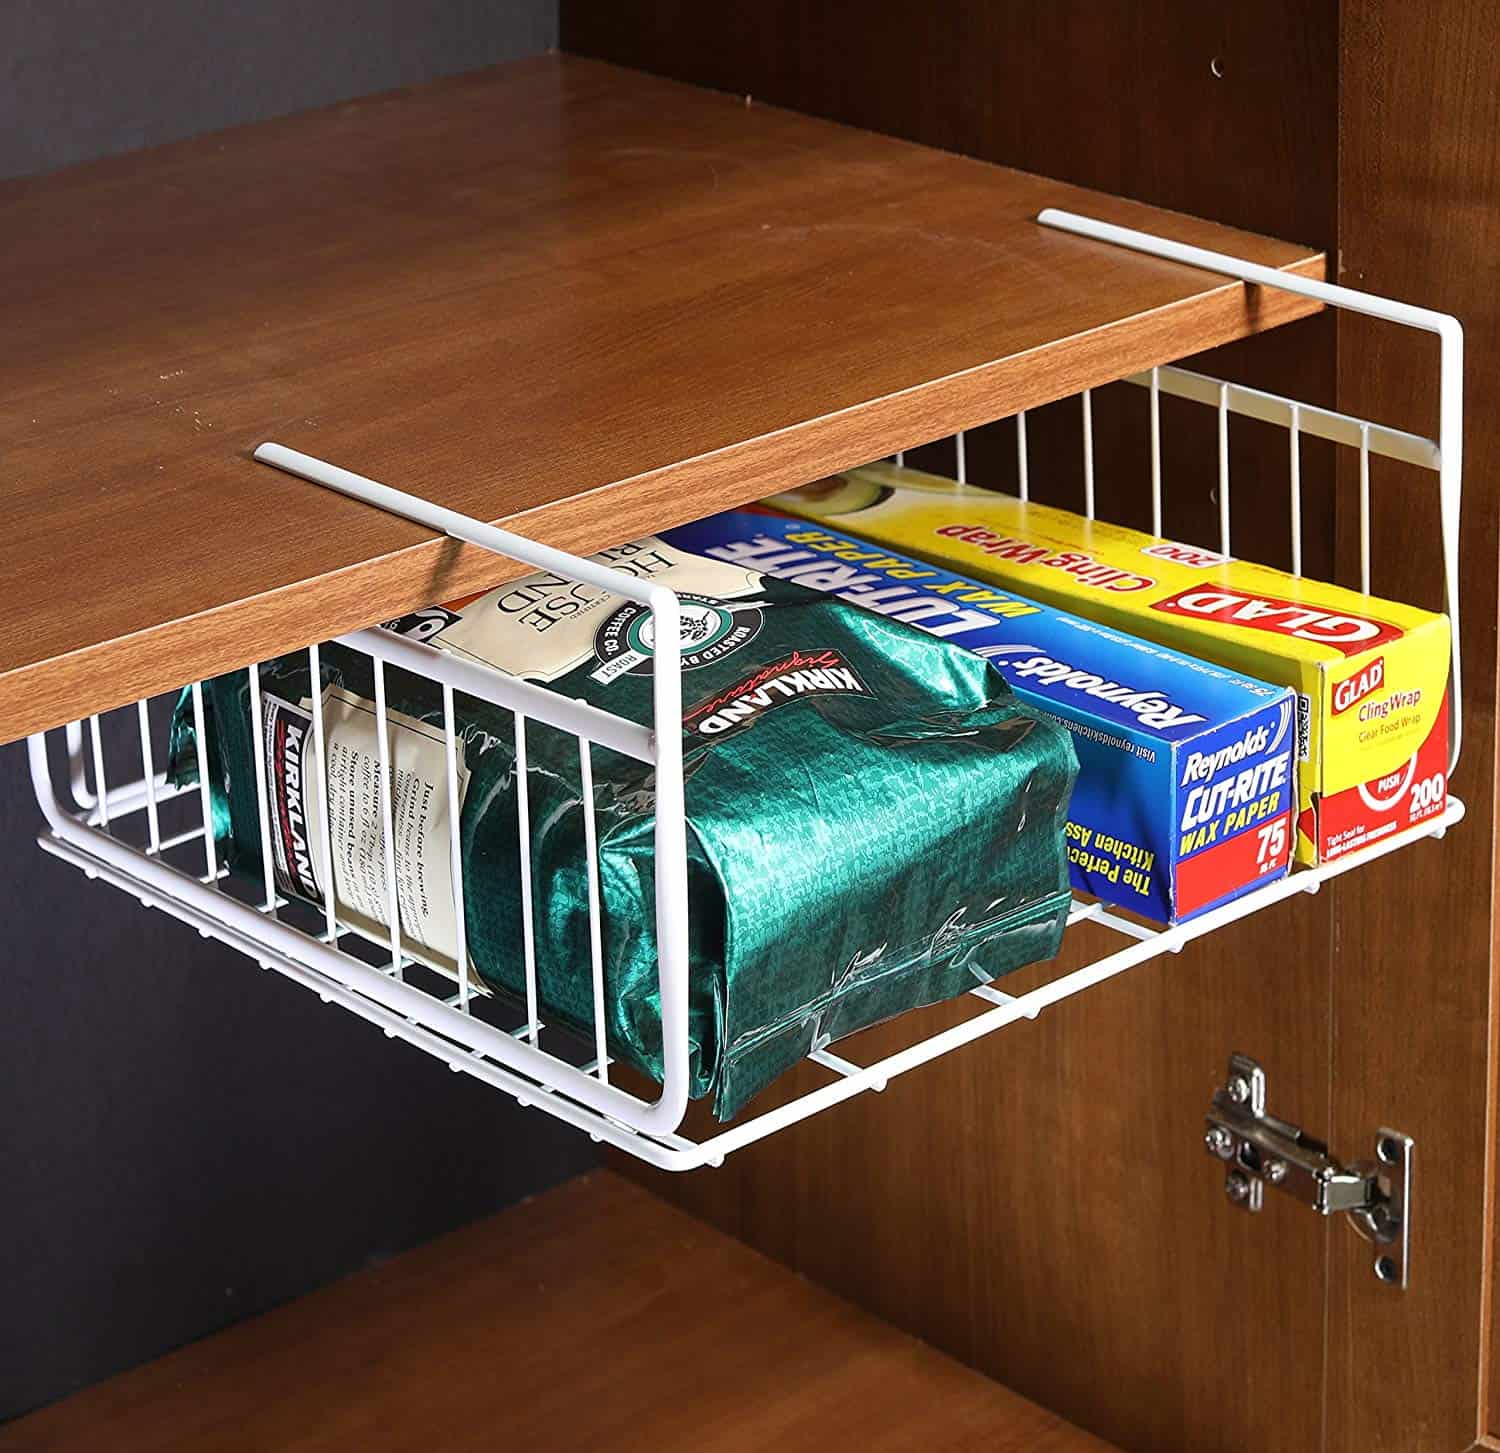 Under the cabinet Kitchen Organizer for less than $20